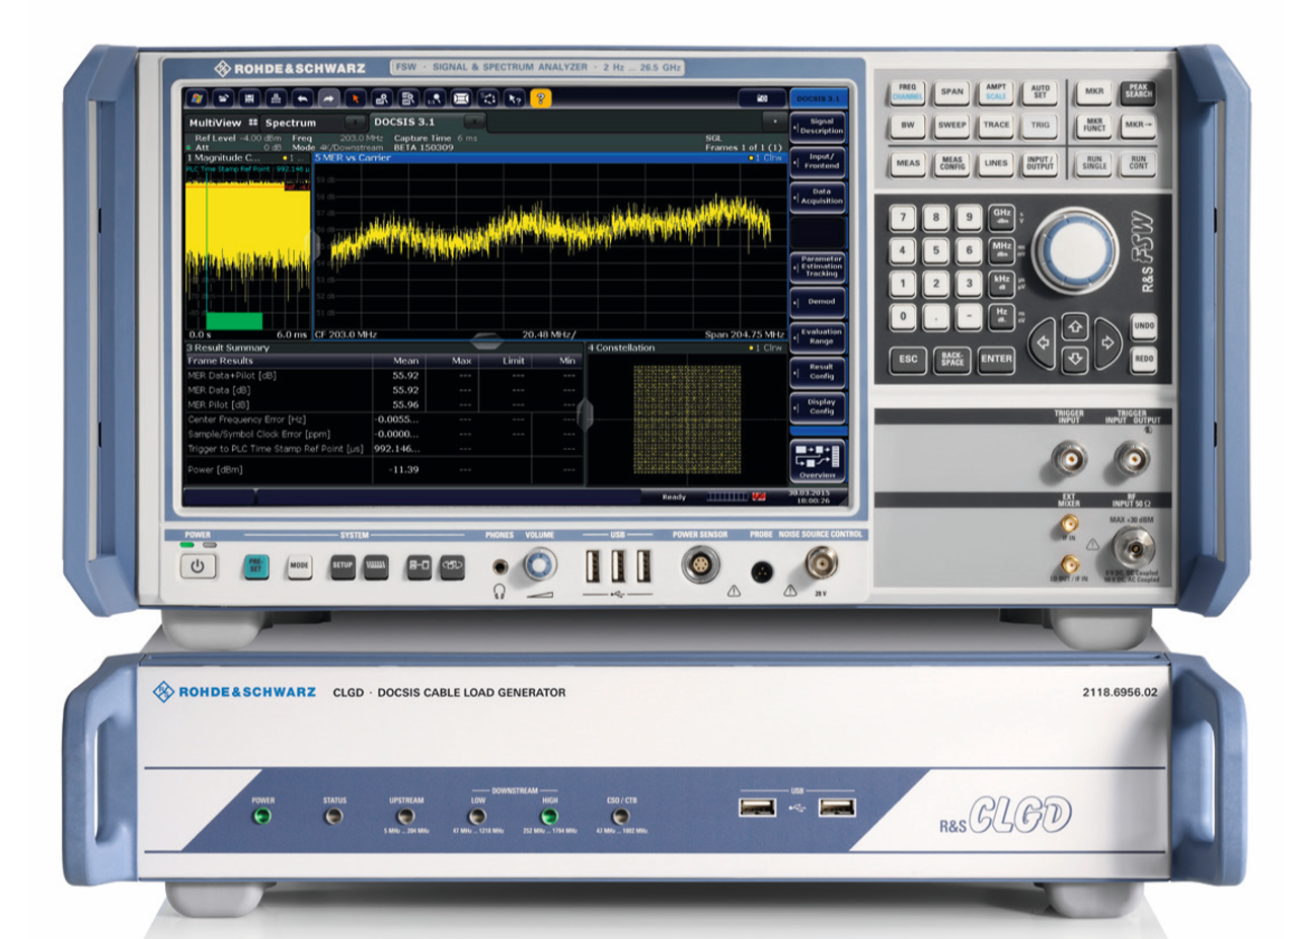 The R&S®FSW signal and spectrum analyzer with the R&S®CLGD DOCSIS cable load generator.